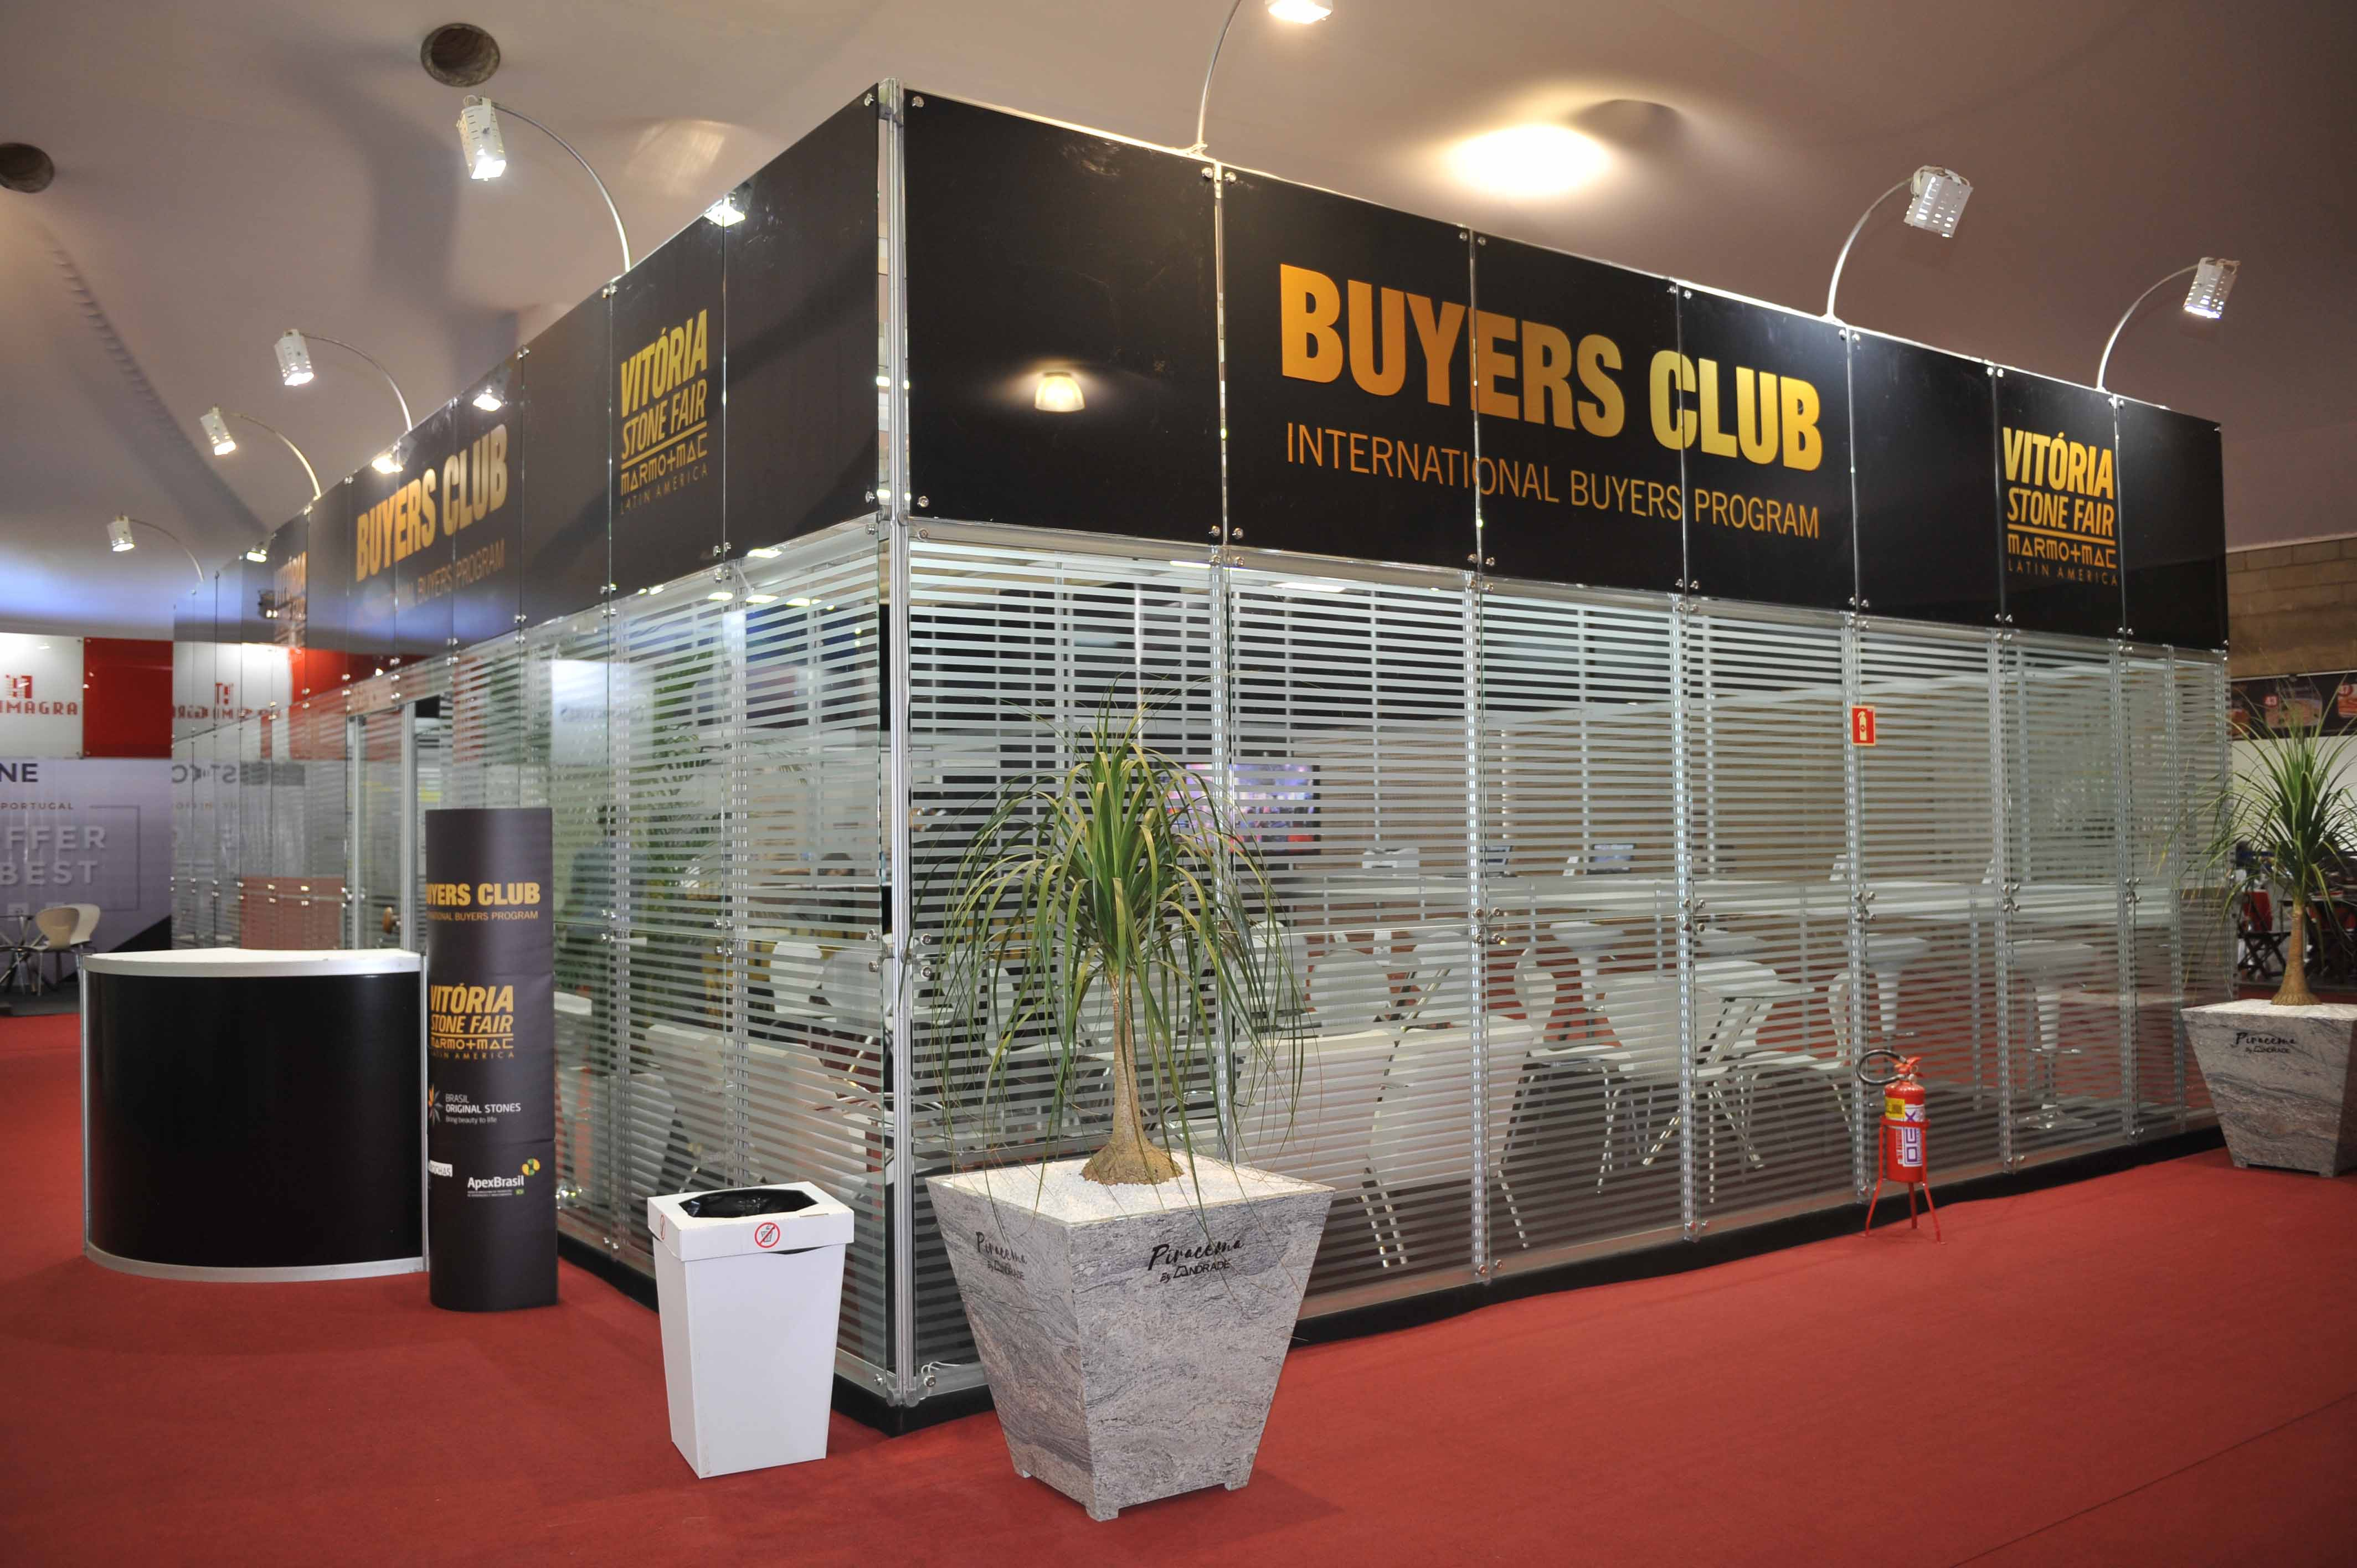 Lounge exclusivo do Buyers Club na Vitoria Stone Fair